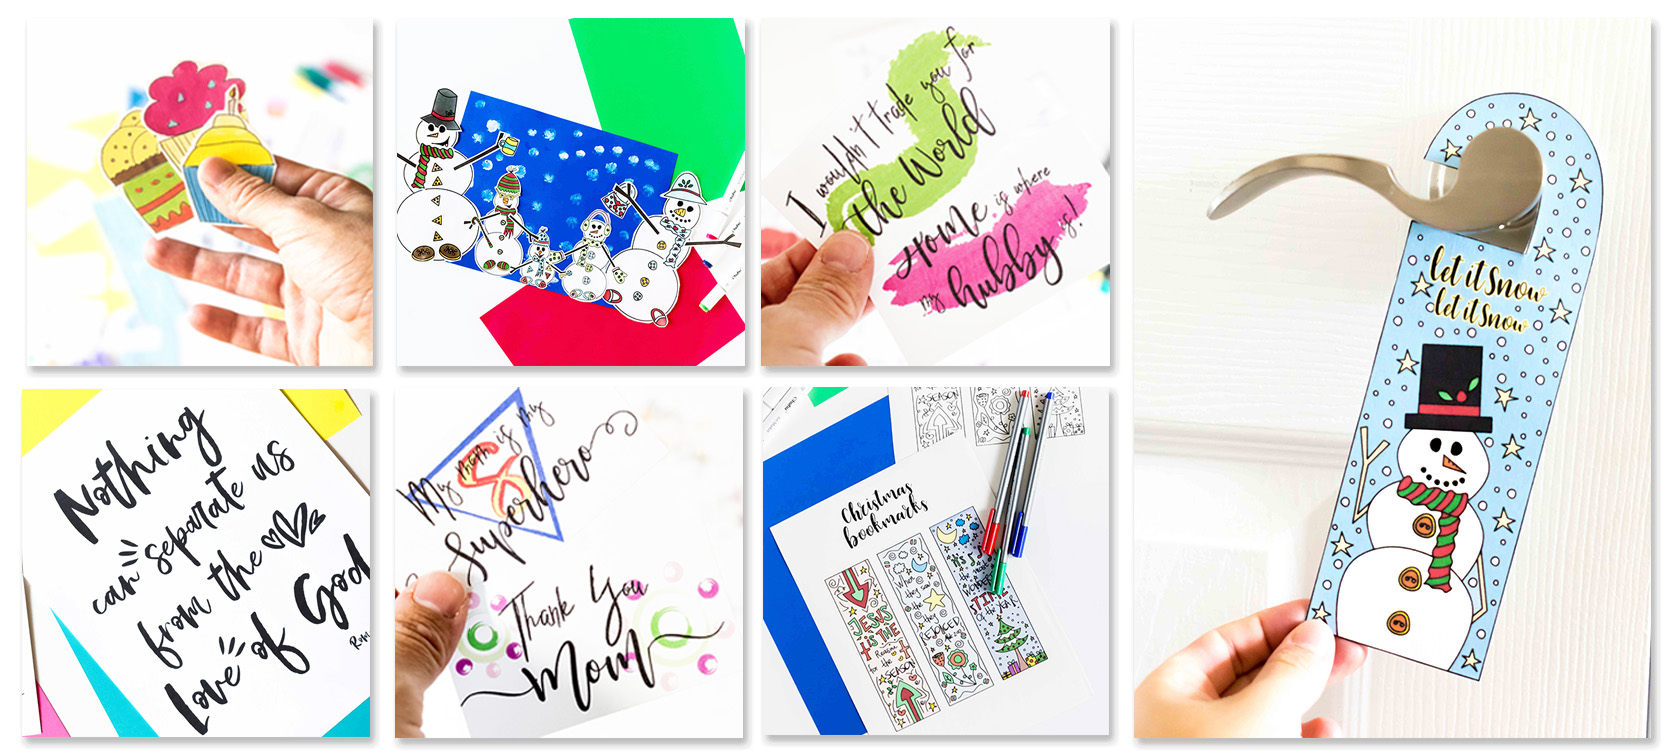 Inside of the seasonal printables library example. Different thumbnails with colors and activities for children, family, etc